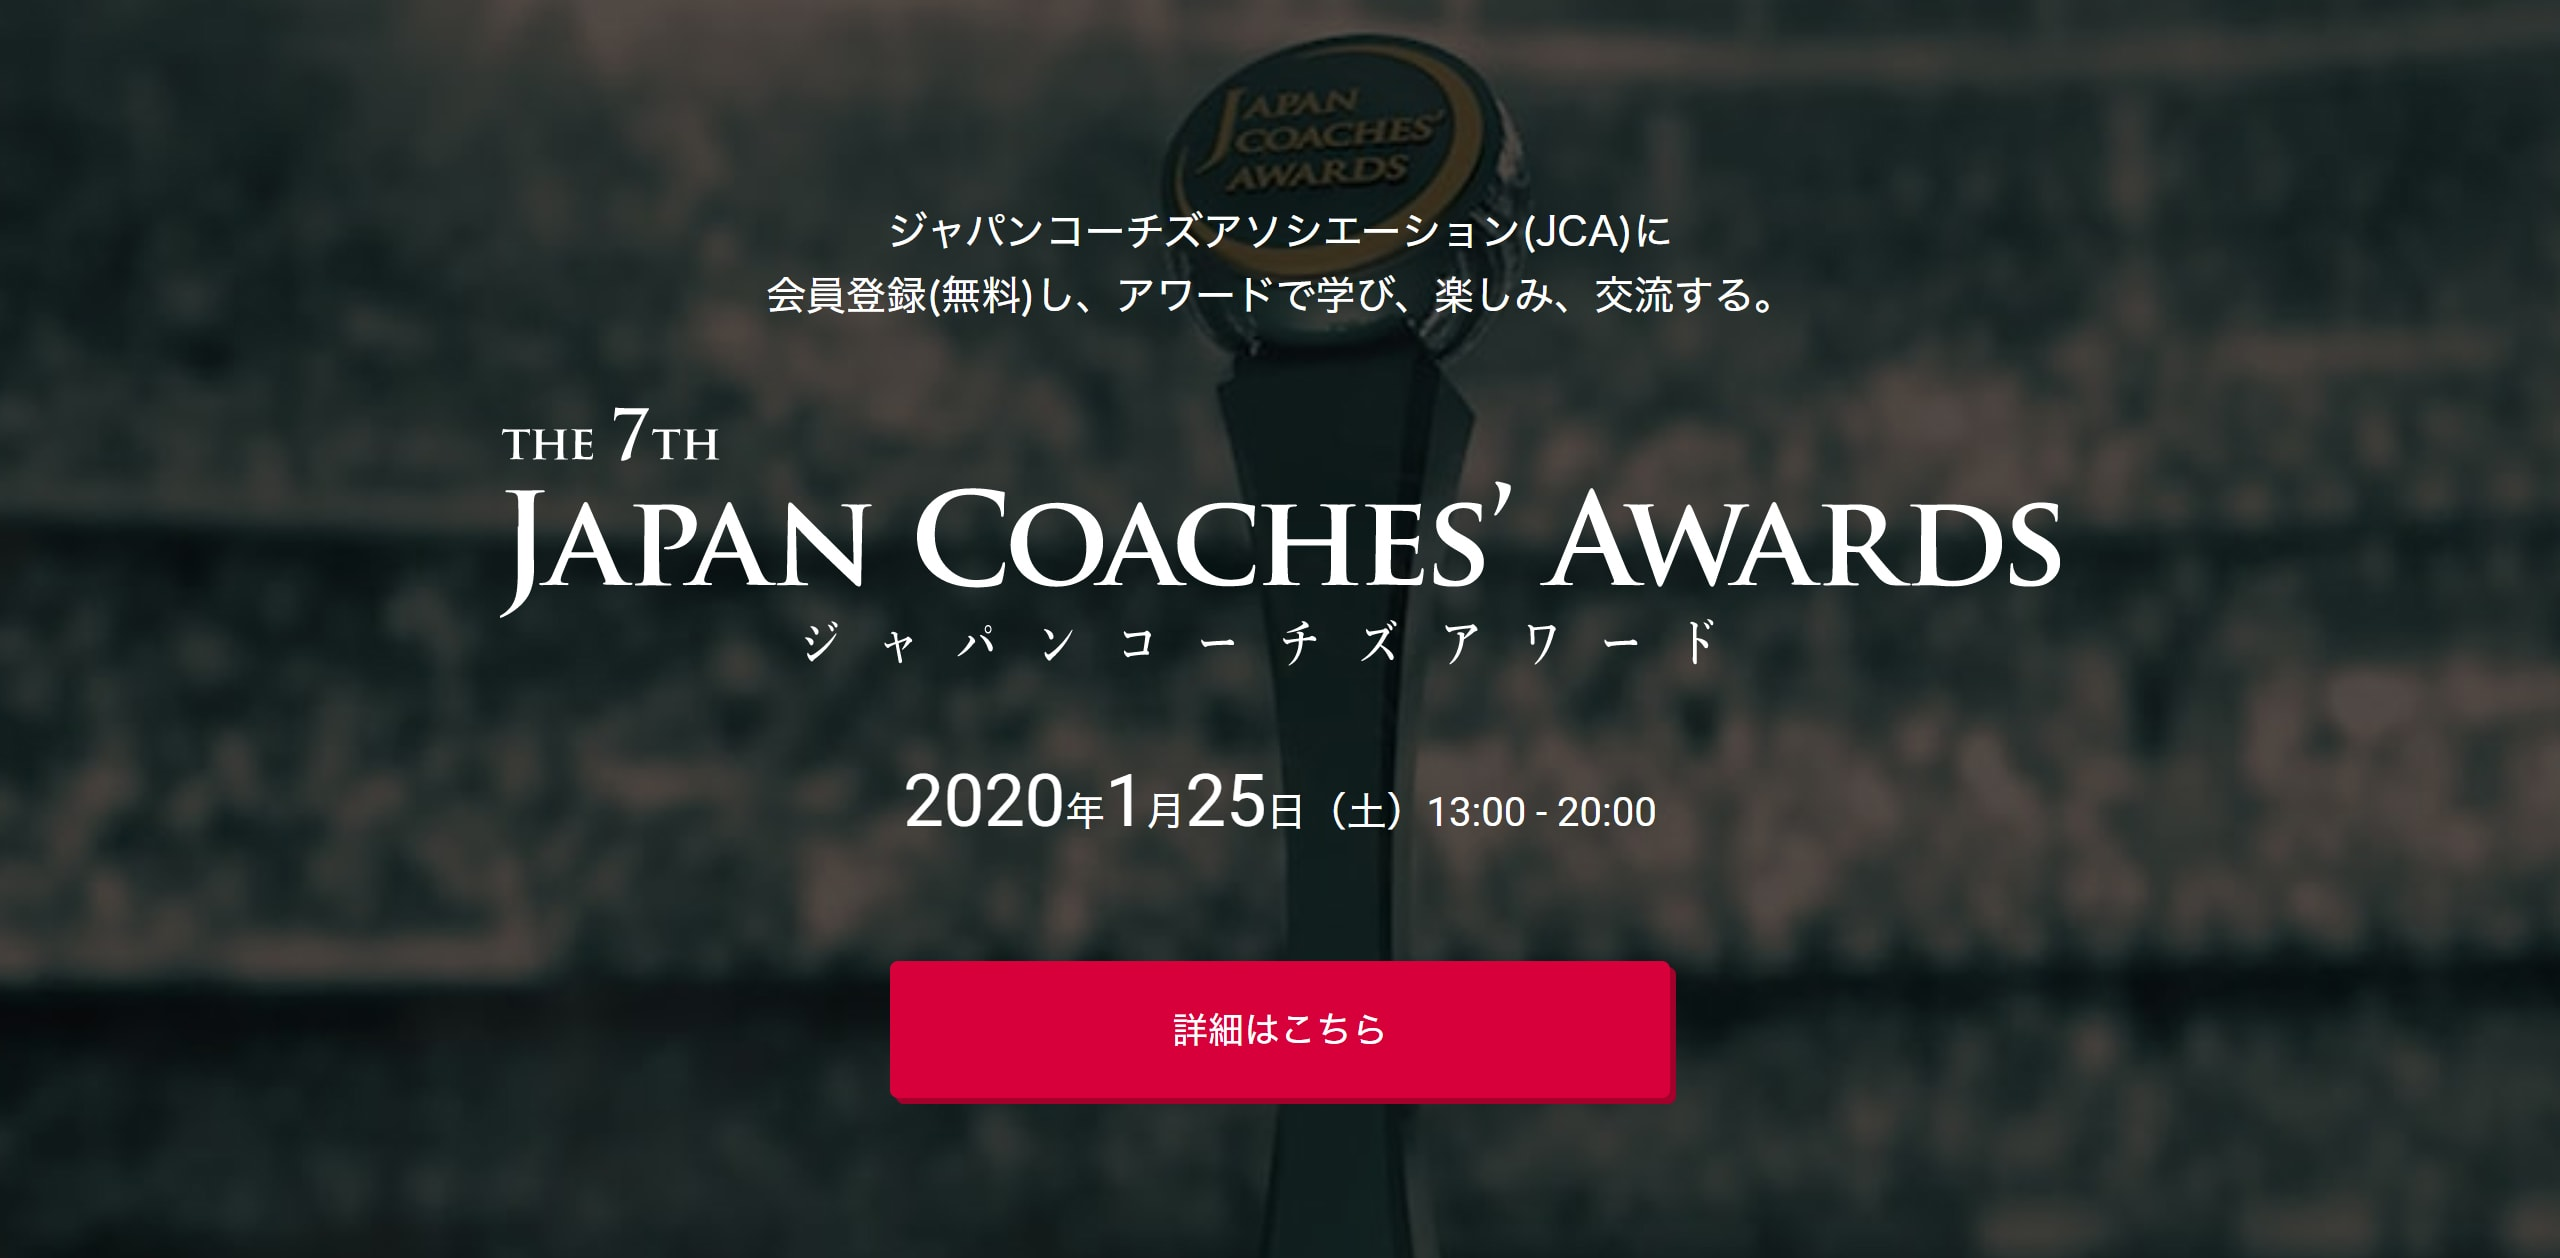 JAPAN COACHES' AWARDS